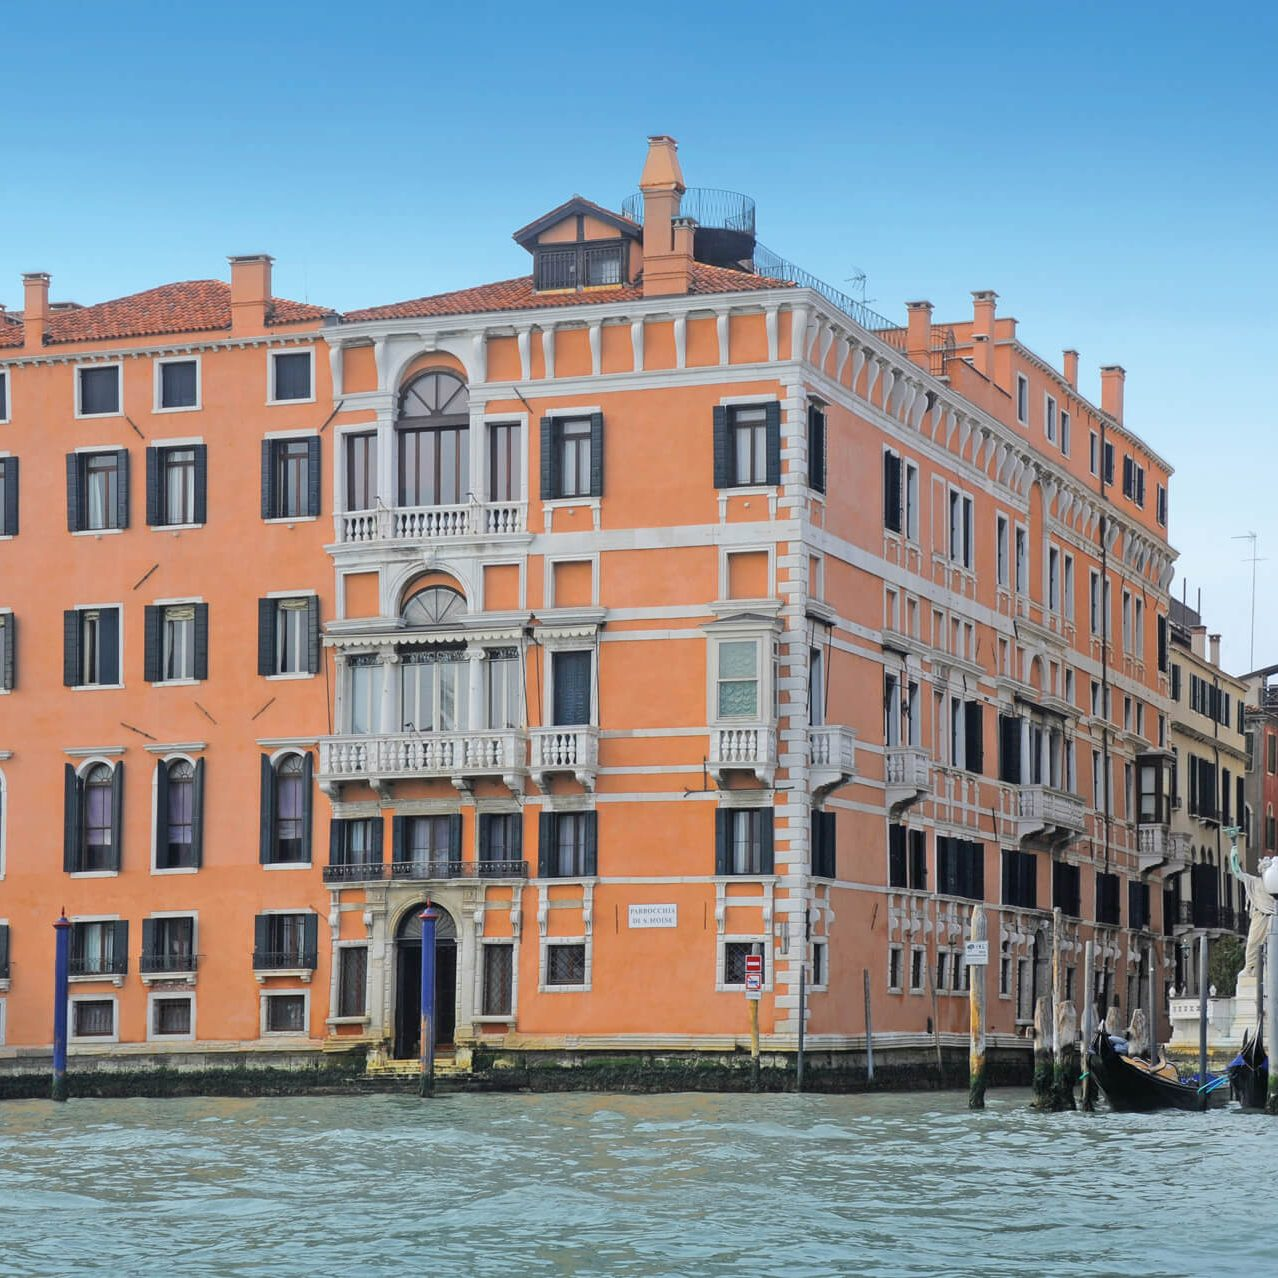 Palazzo Ca'nova on the Grand Canal